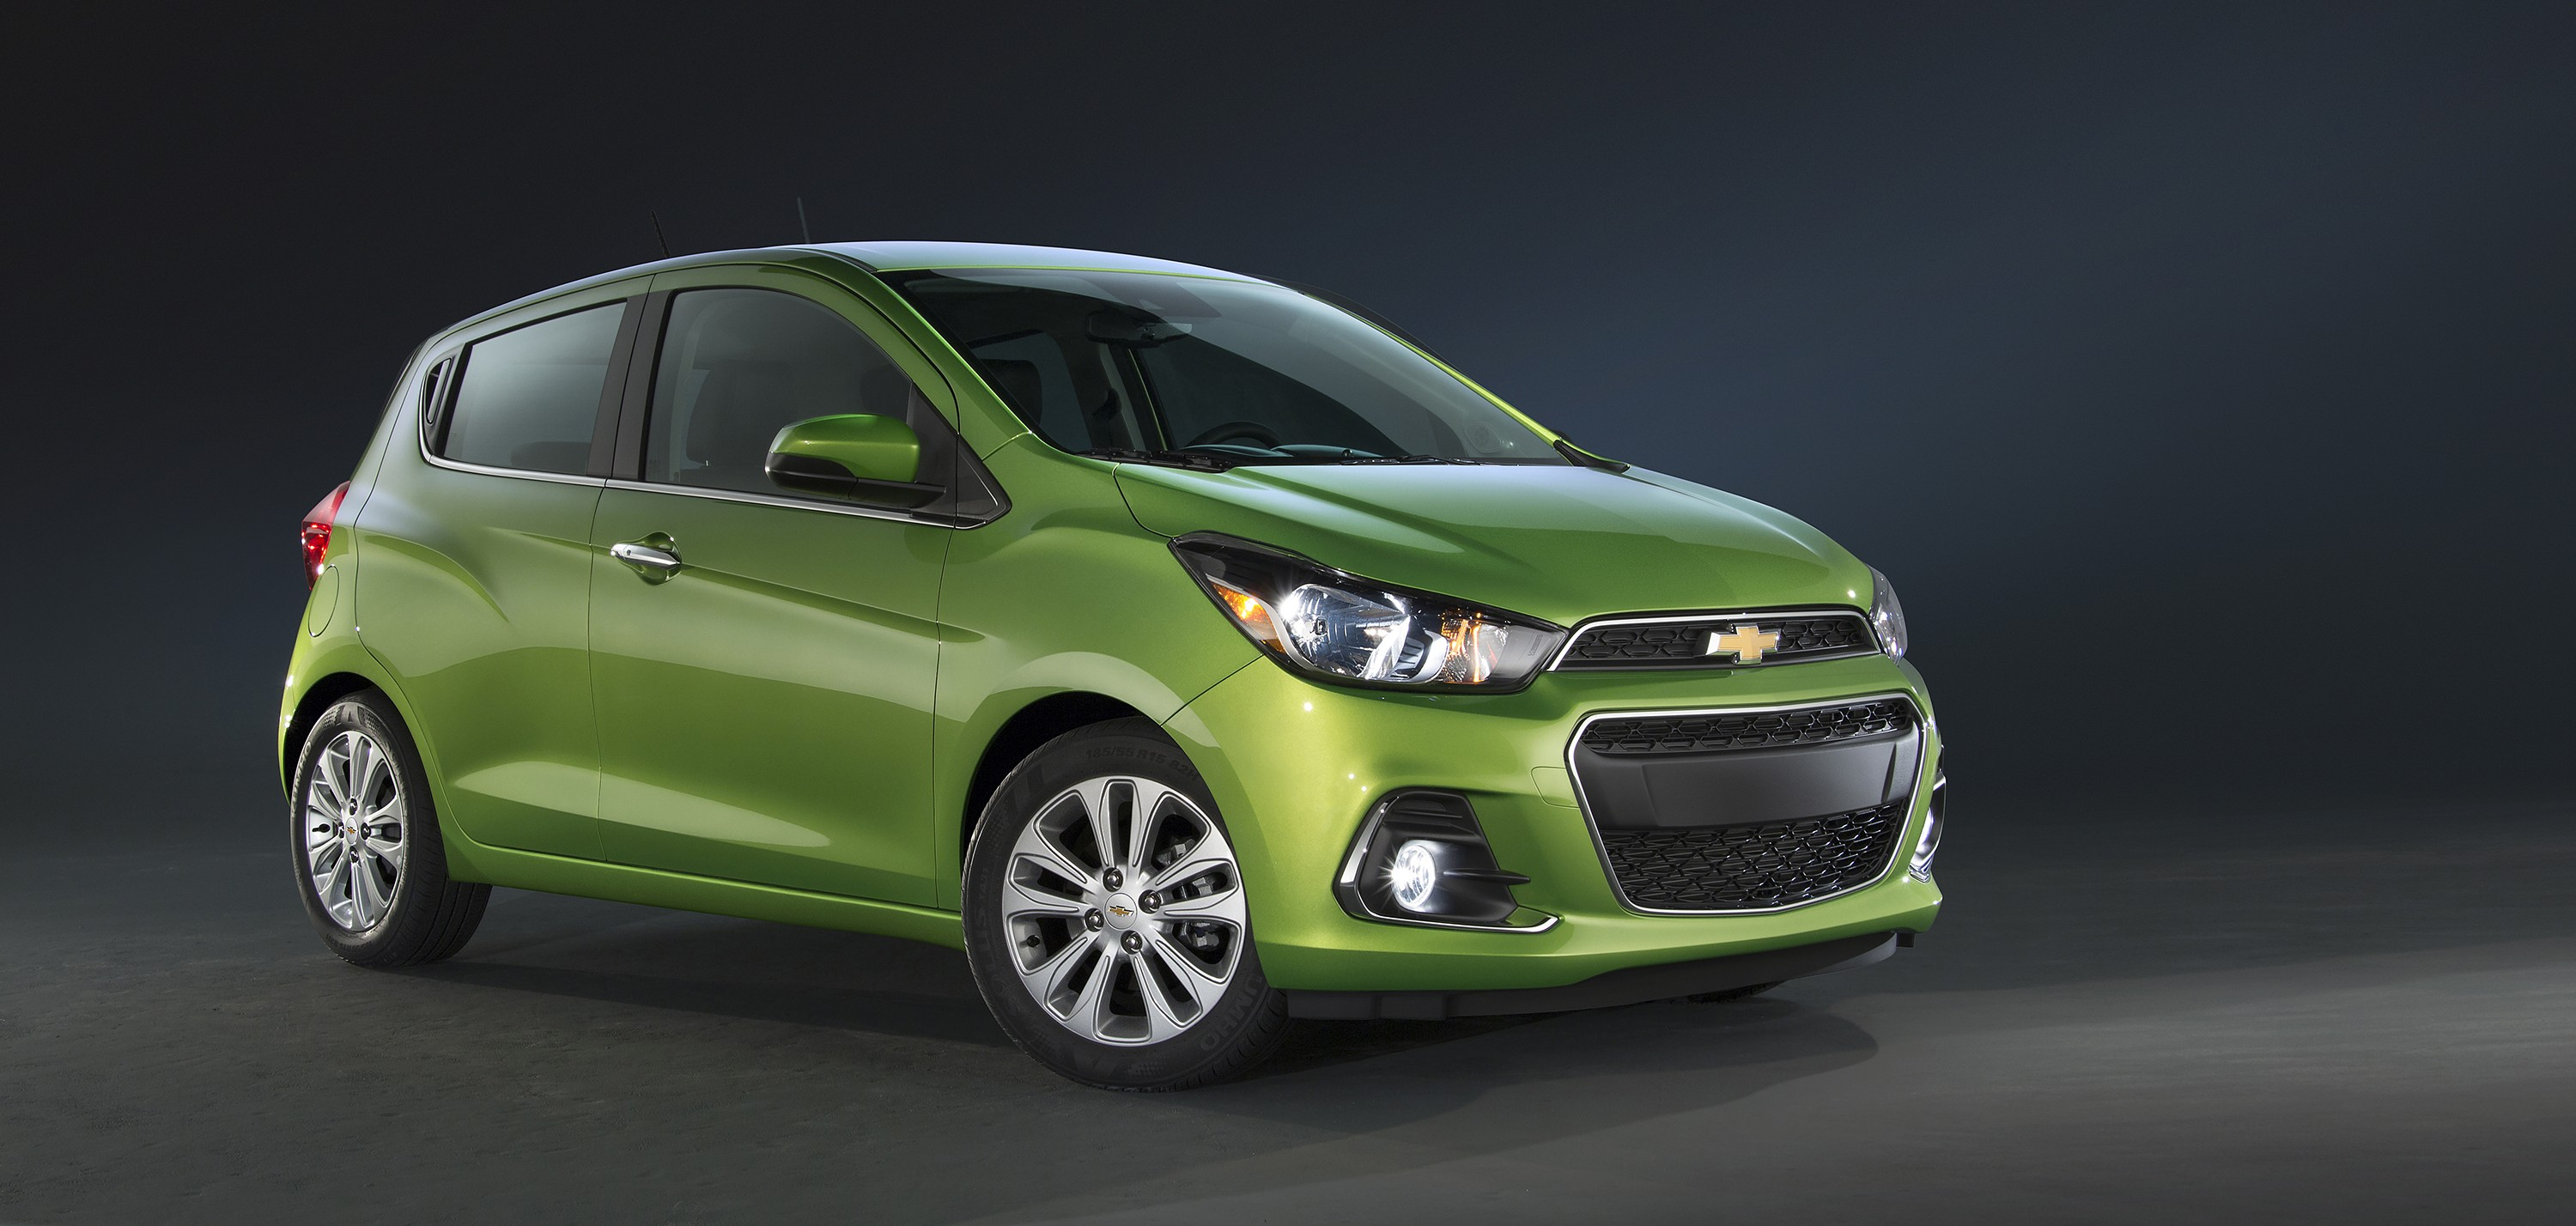 CHEVROLET Spark / Matiz specs & photos - 2016, 2017, 2018 ...